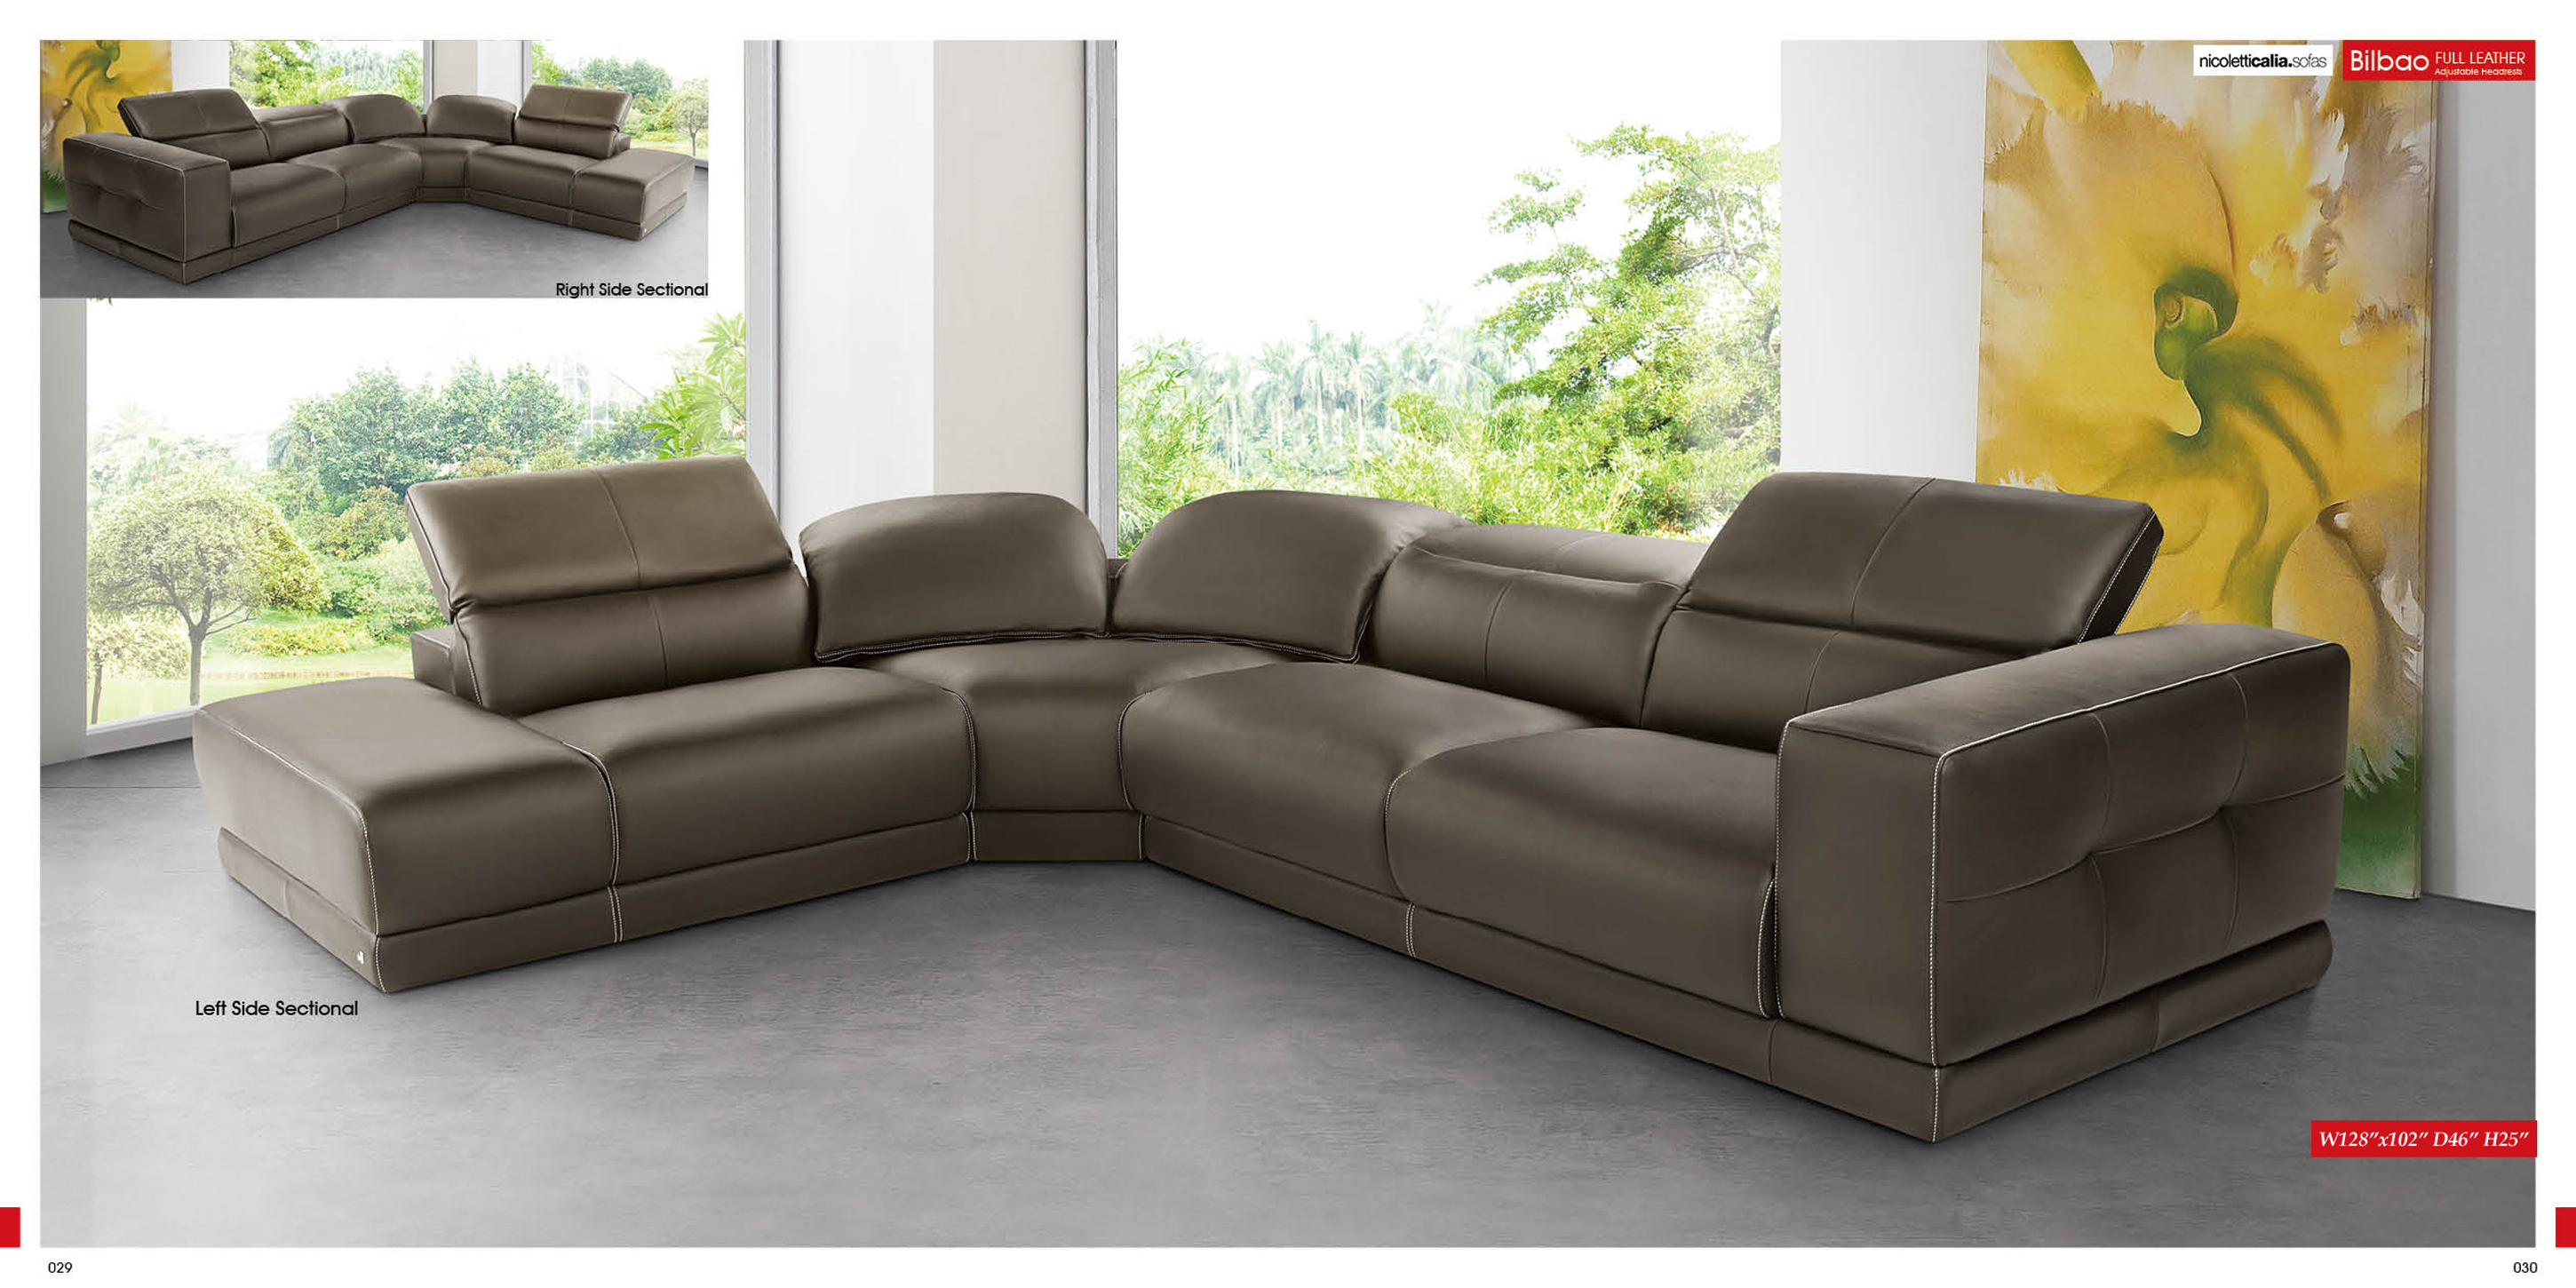 Luxury Brown Sectional Sofa Design Idea For Living Room With Yellow Floral Painting Frame Less Glass Windows And Gray Floor Tile Comfy Sectional Sofa Design Ideas For Living Room (Image 50 of 123)